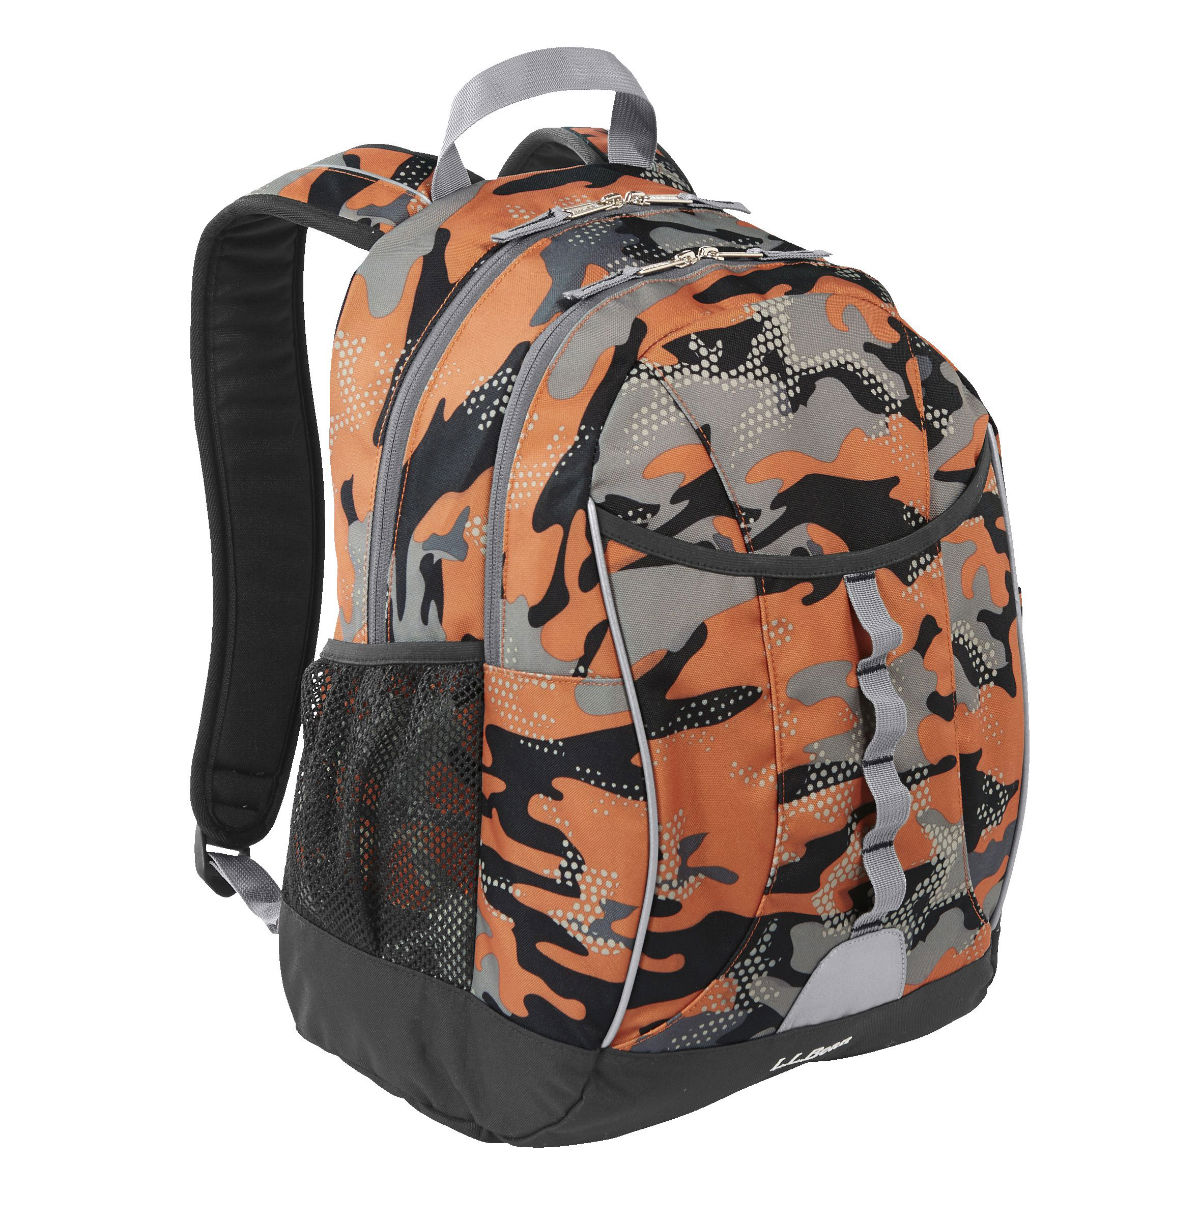 How The Backpack Went From Outdoor Adventure Sack To